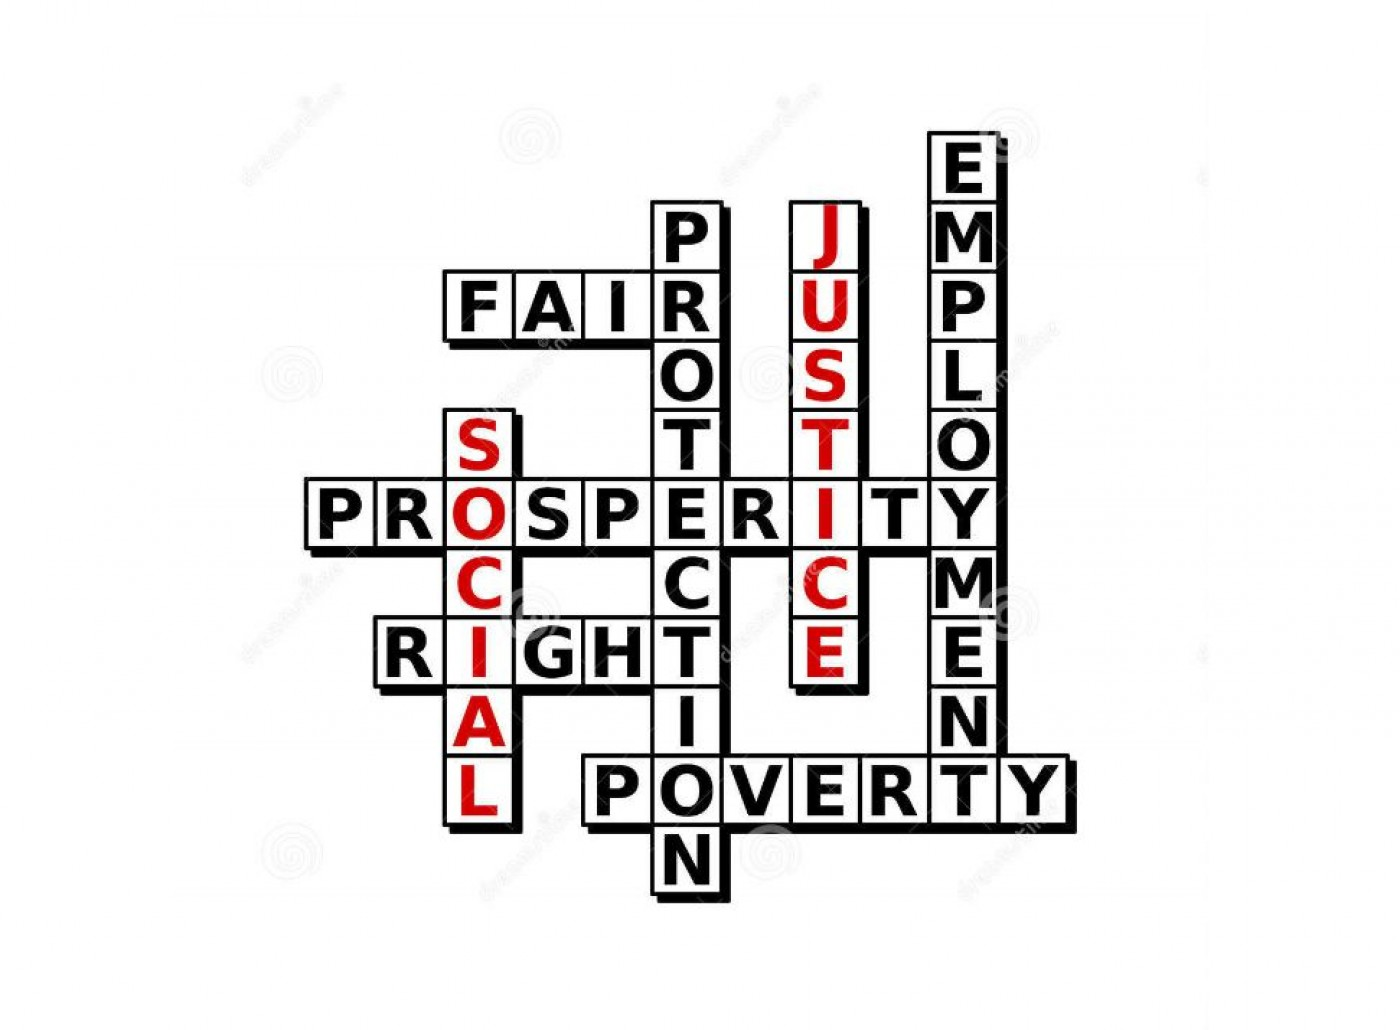 003 Surprising Prosperity Crossword Photo  Hollow Sound Of Sudden Clue Material 7 Letter1400